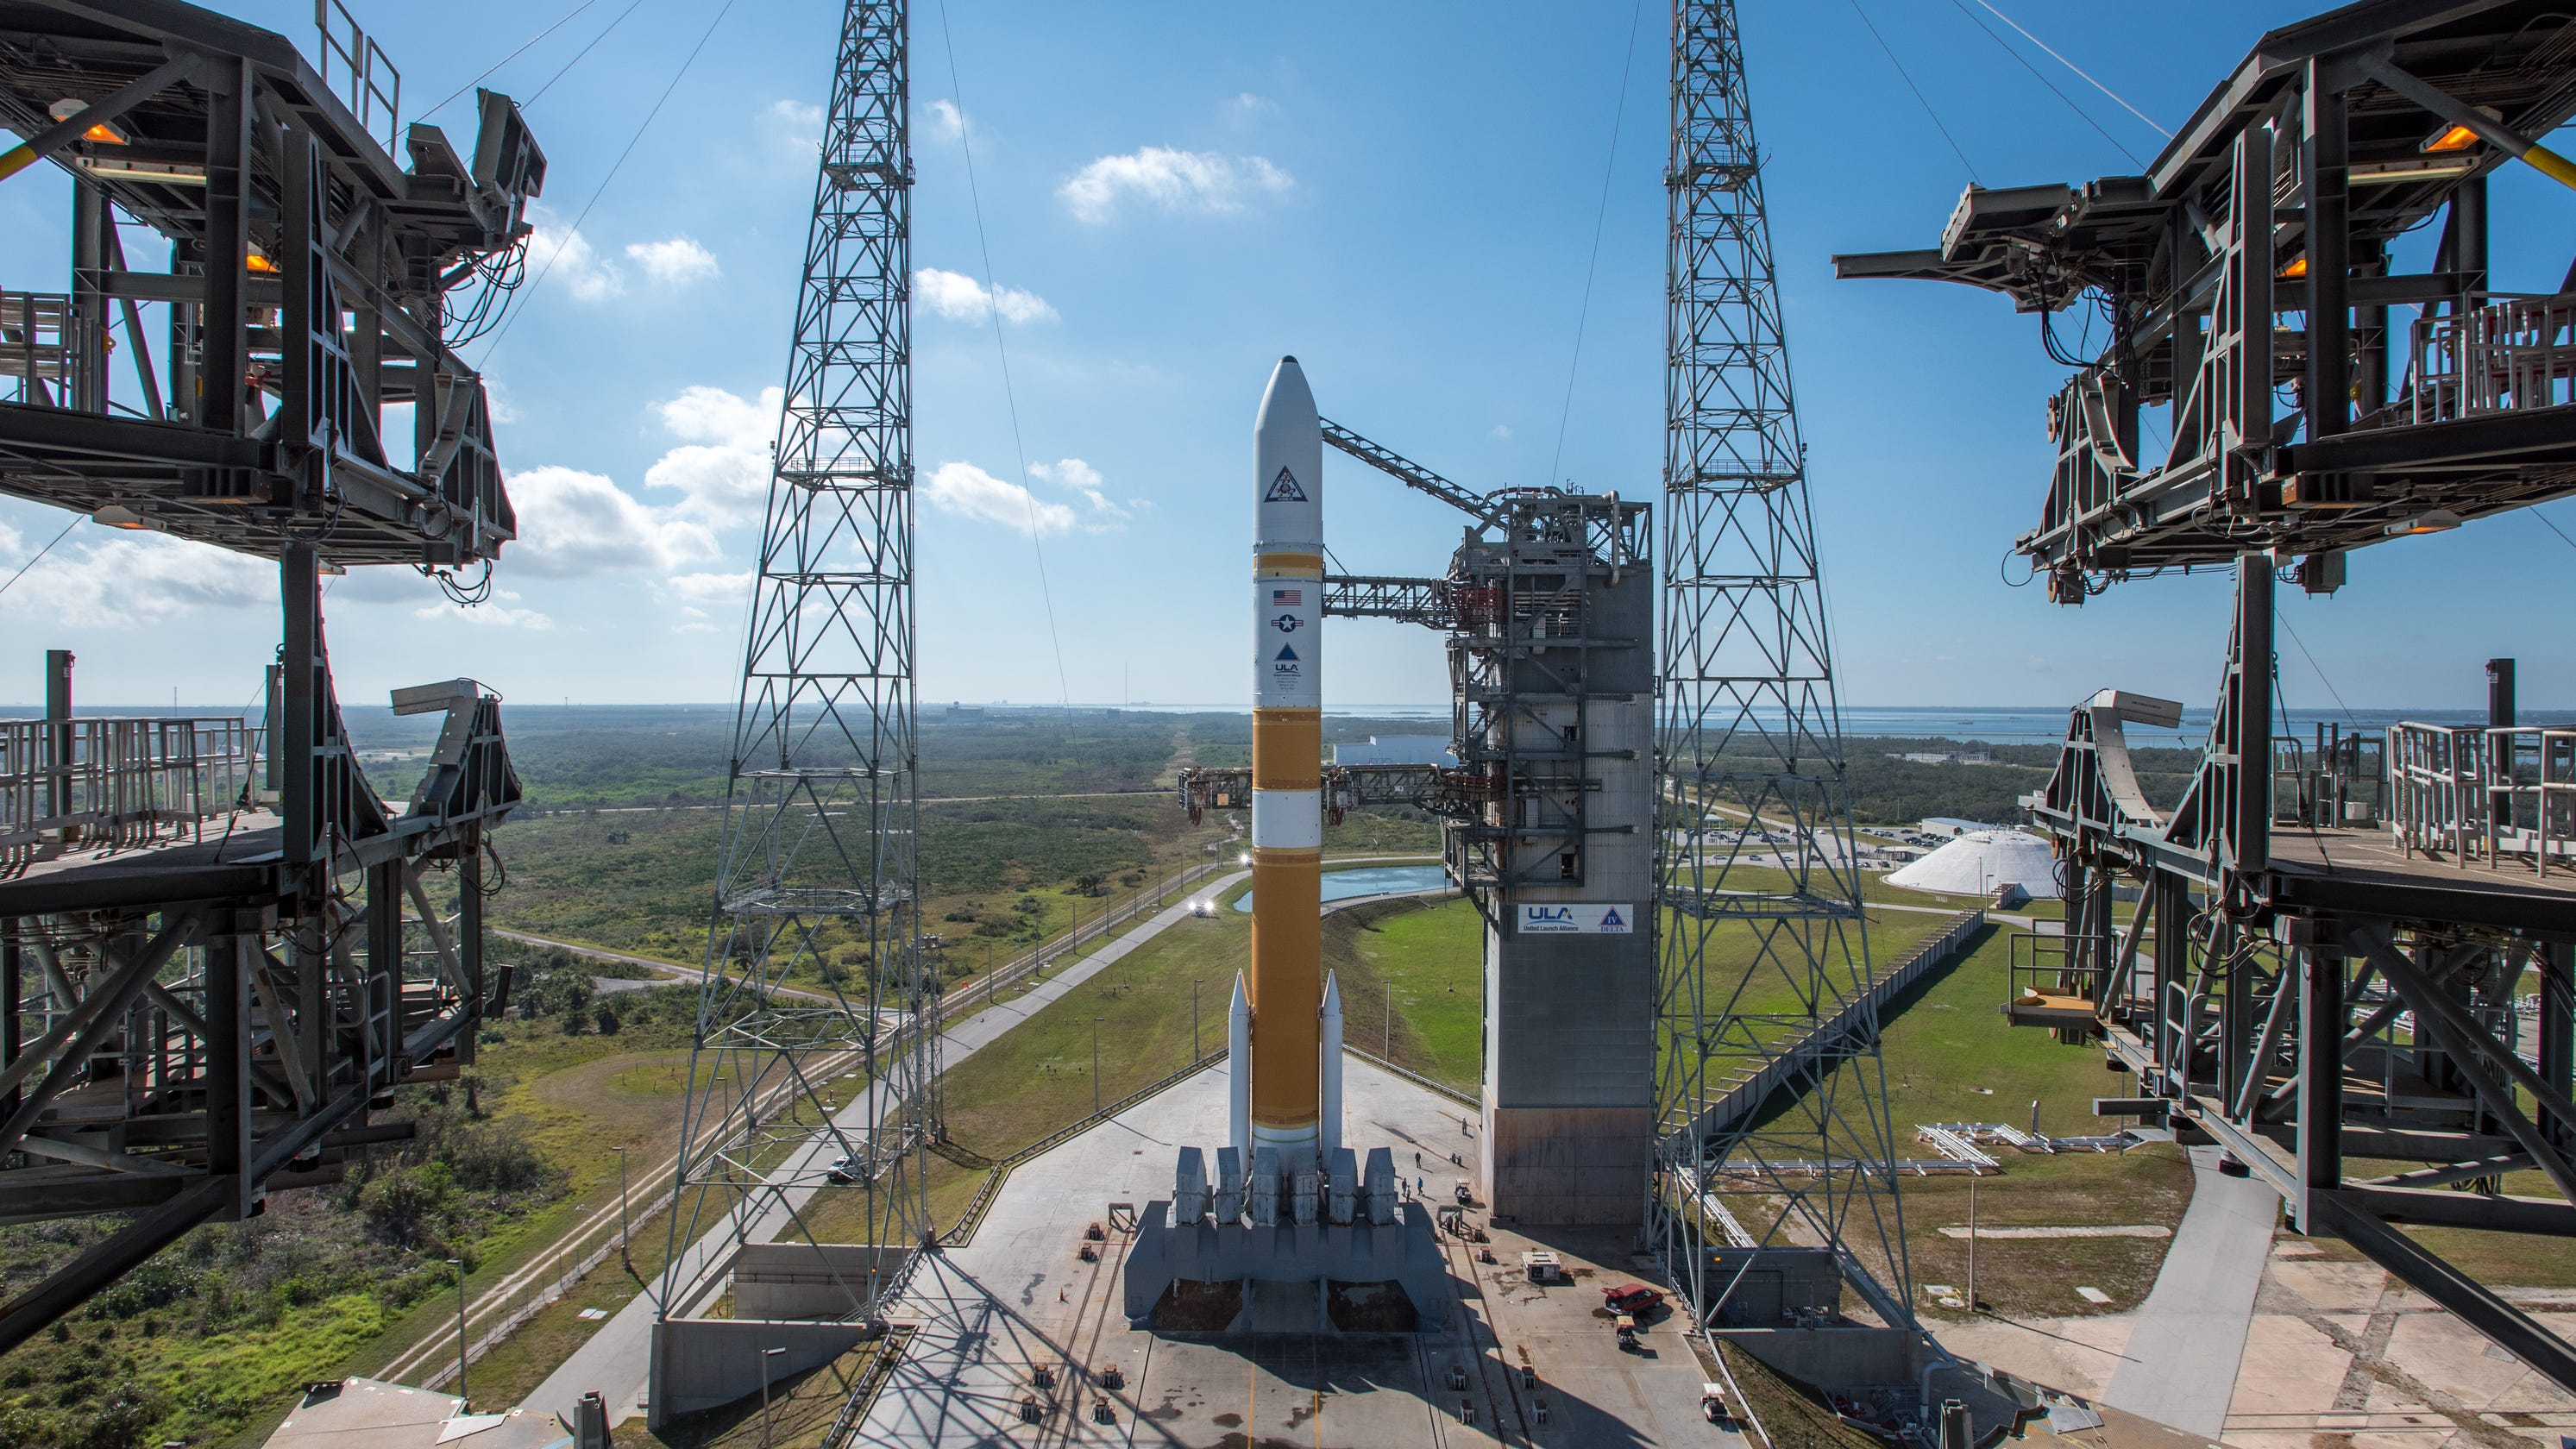 How To Watch Evening Launch Of Delta IV Rocket From Cape